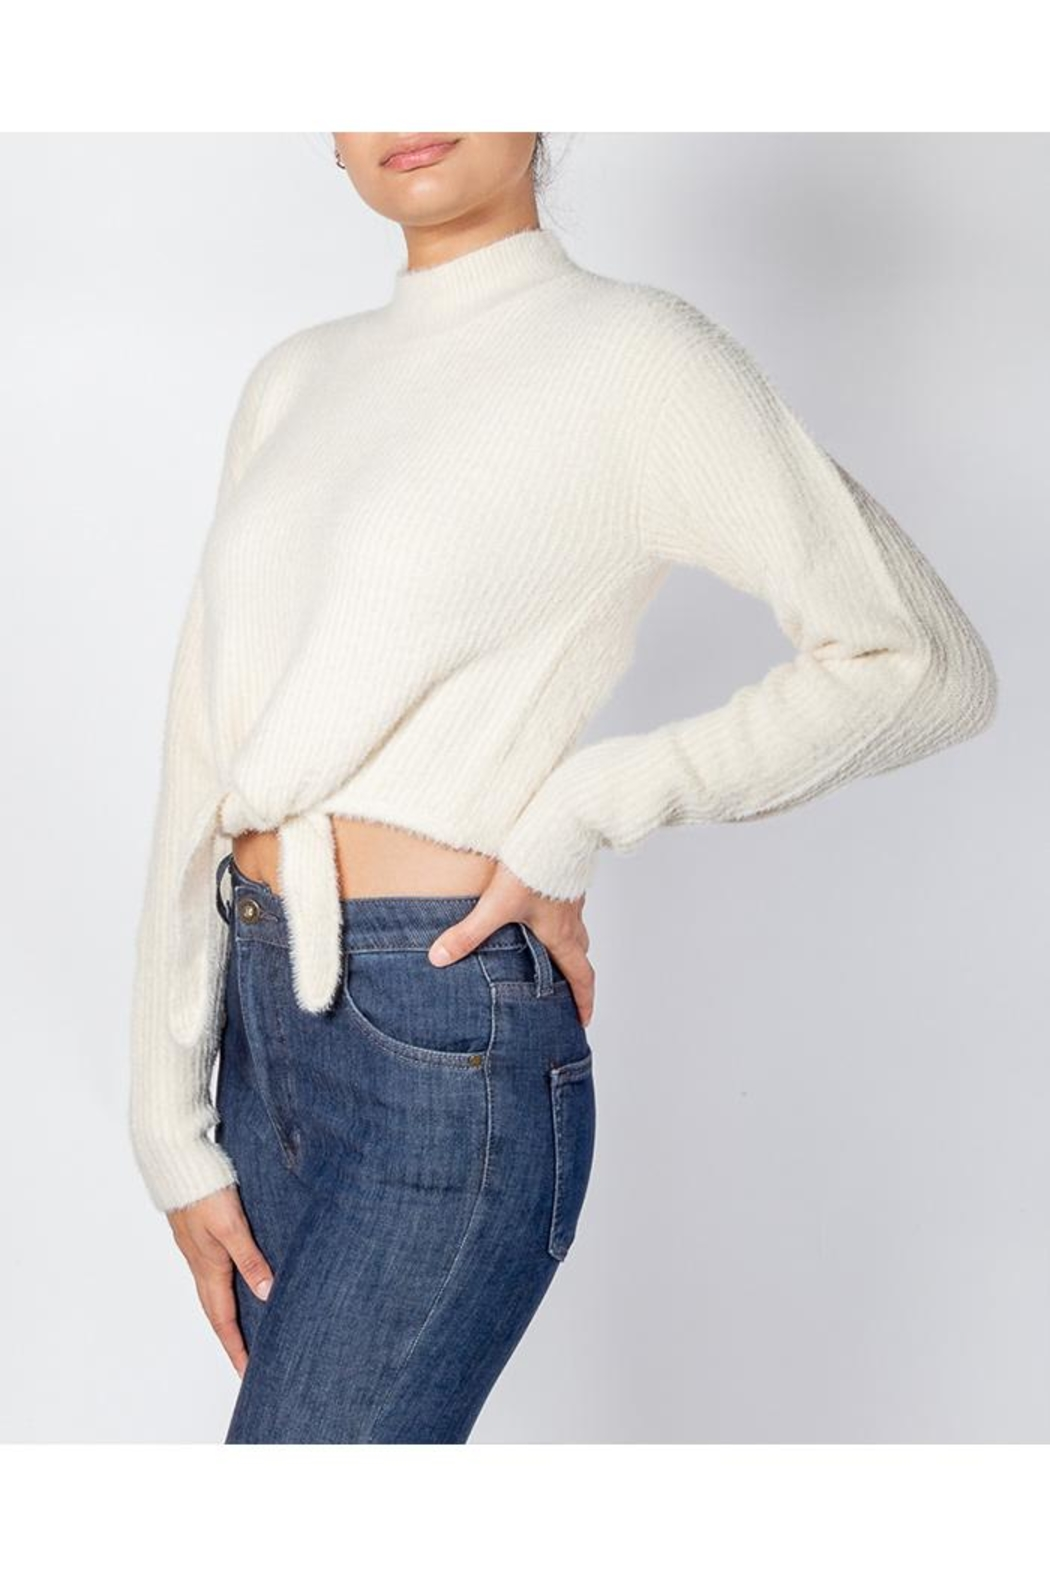 Cotton Candy Soft Front-Tie Sweater - Side Cropped Image